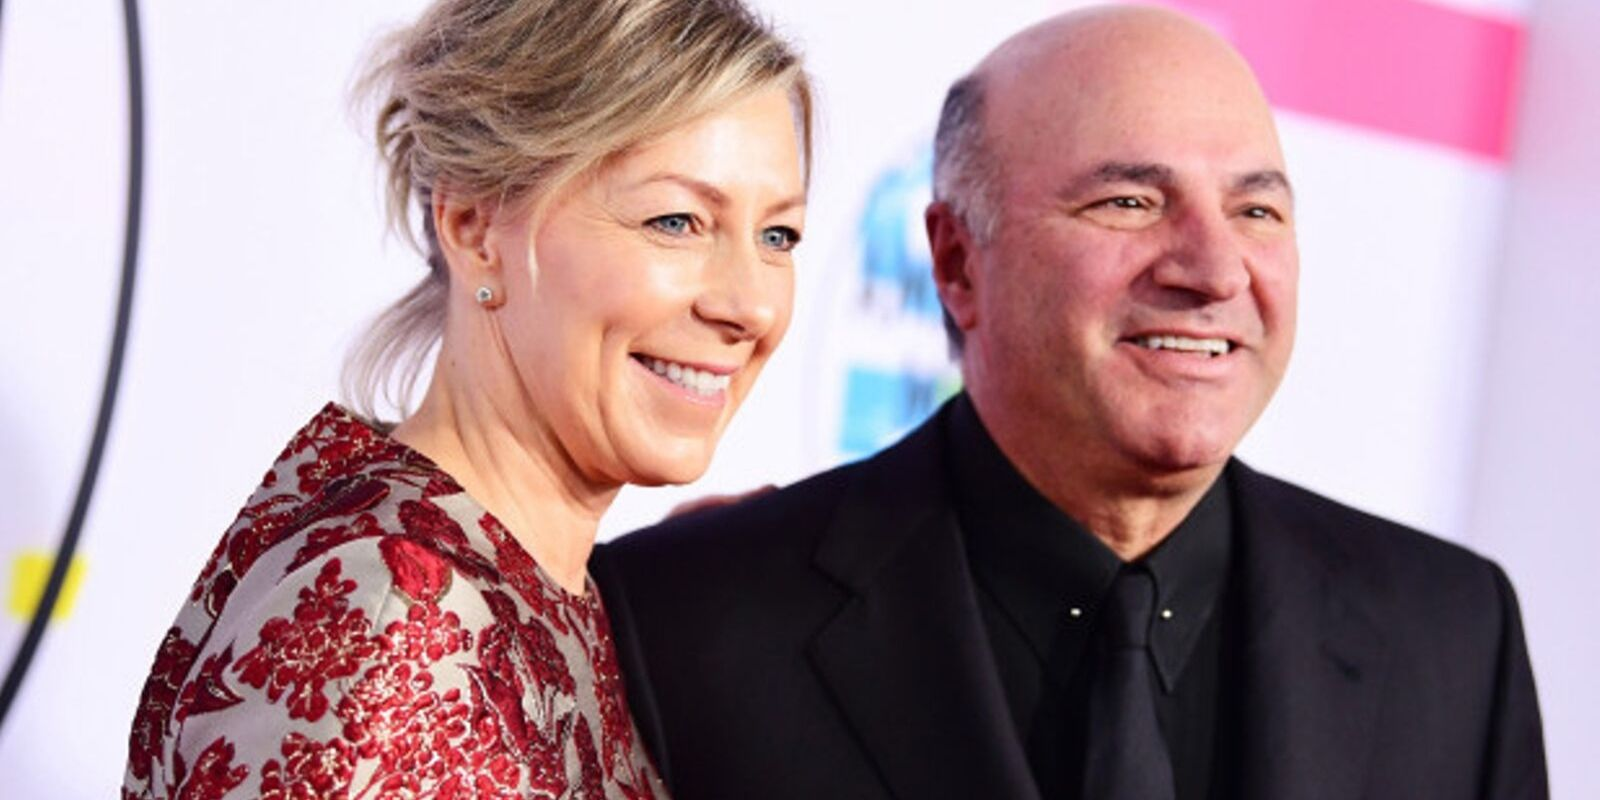 Kevin O'Leary's wife among two charged in fatal boating collision